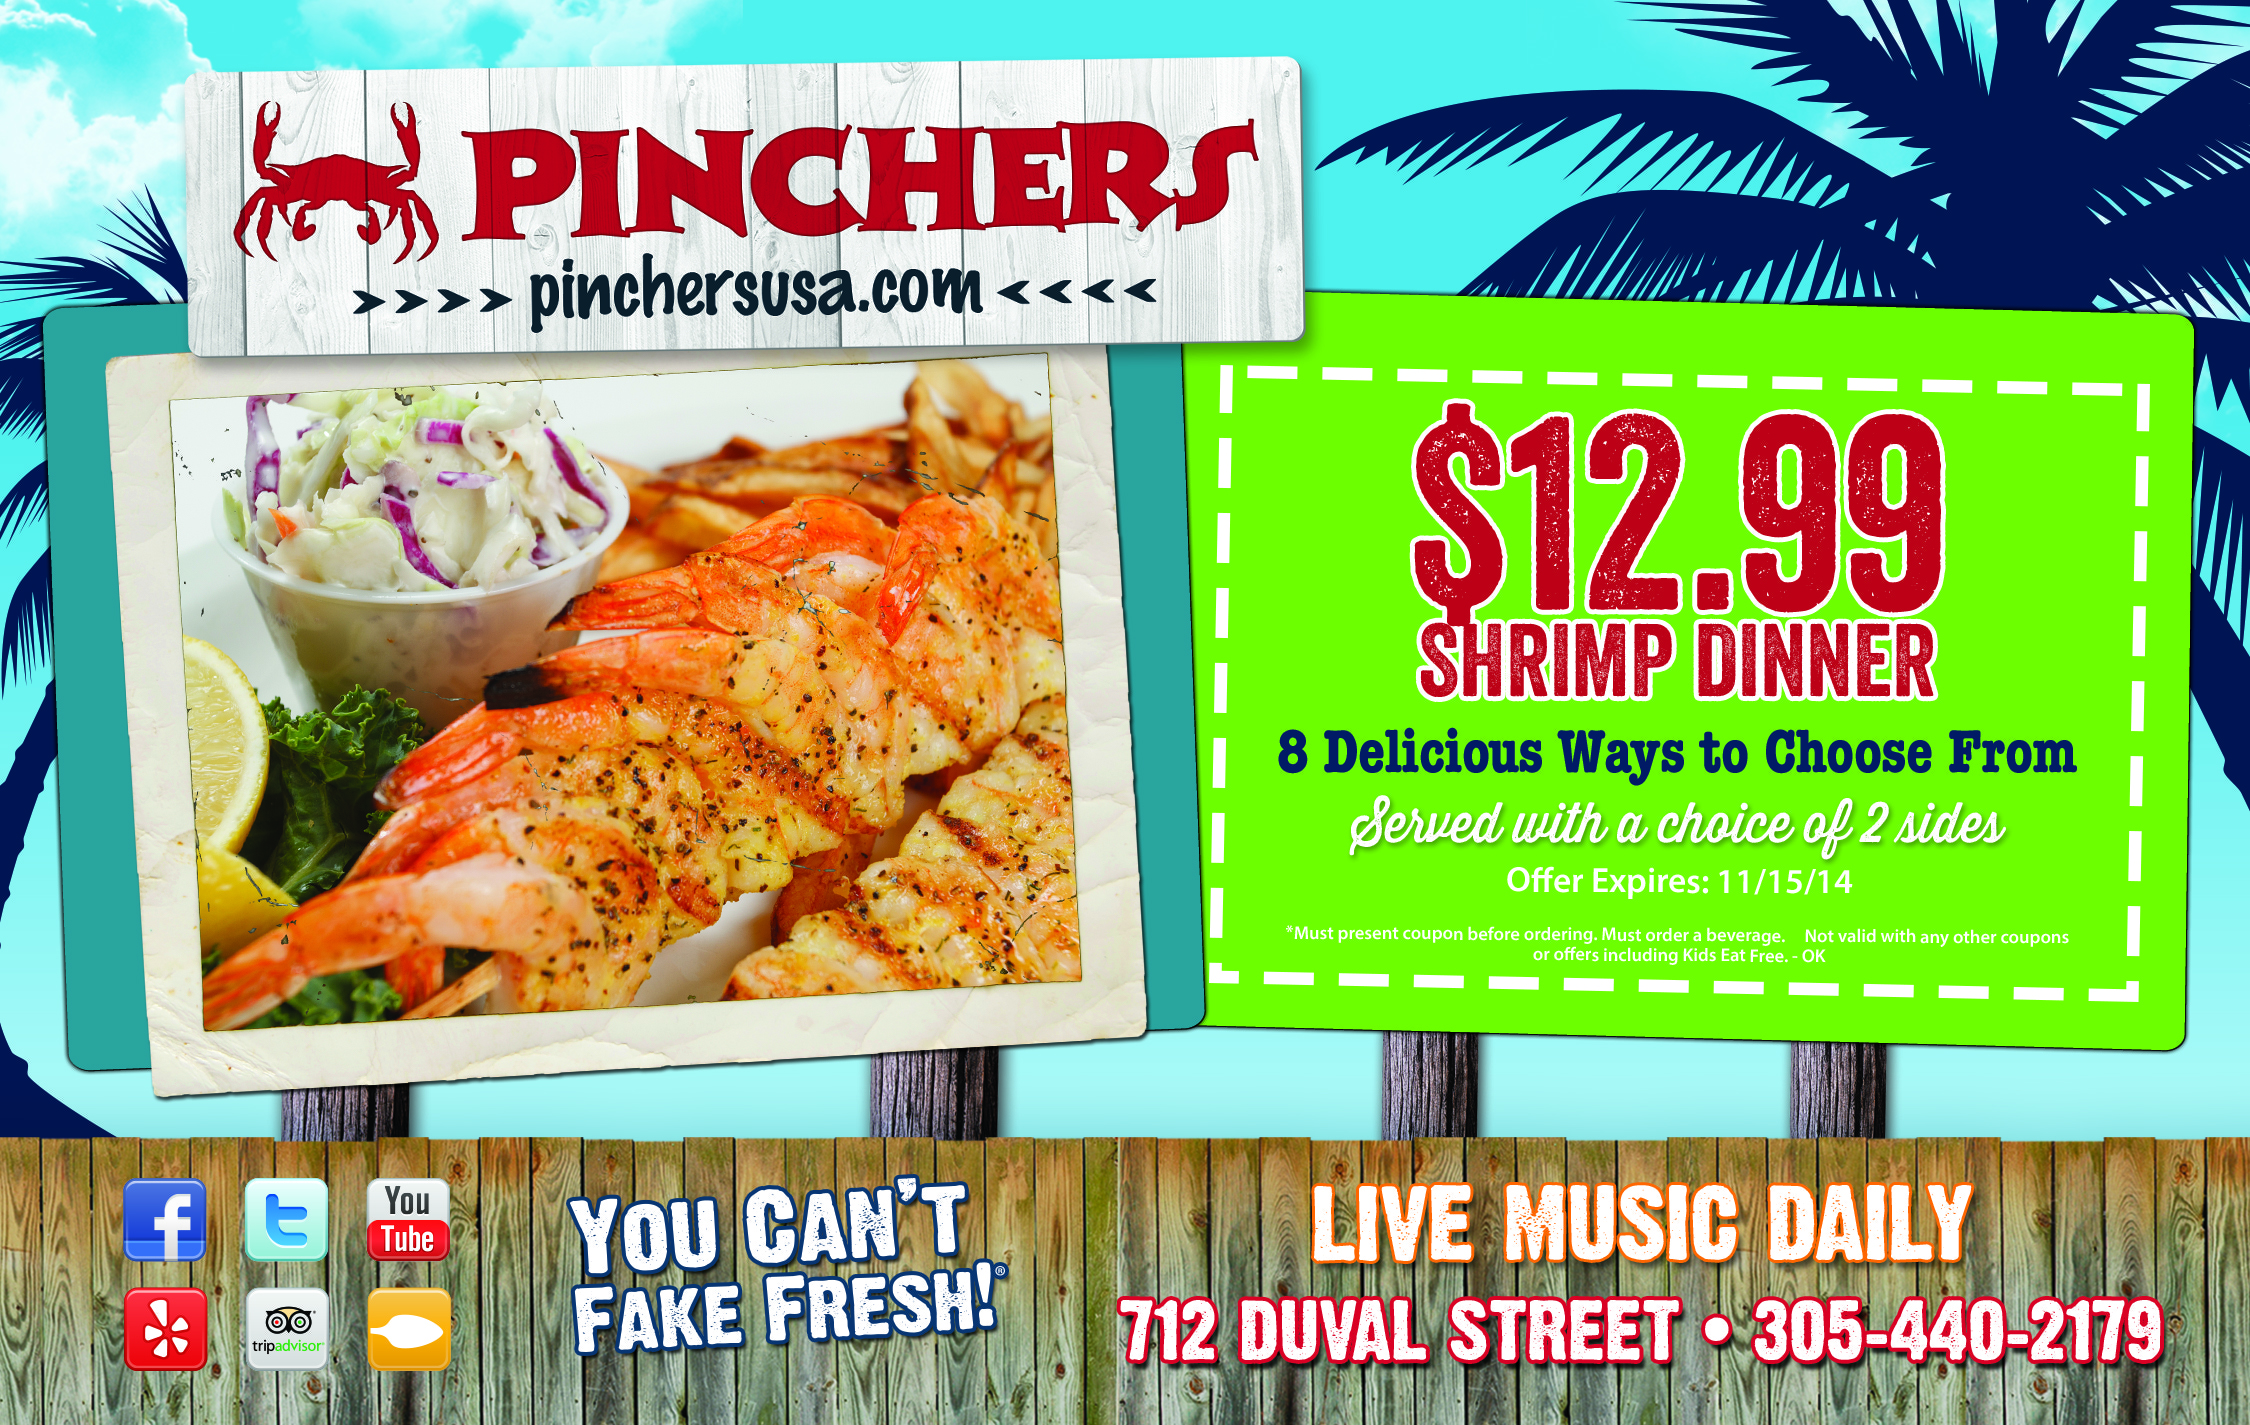 Pinchers coupons